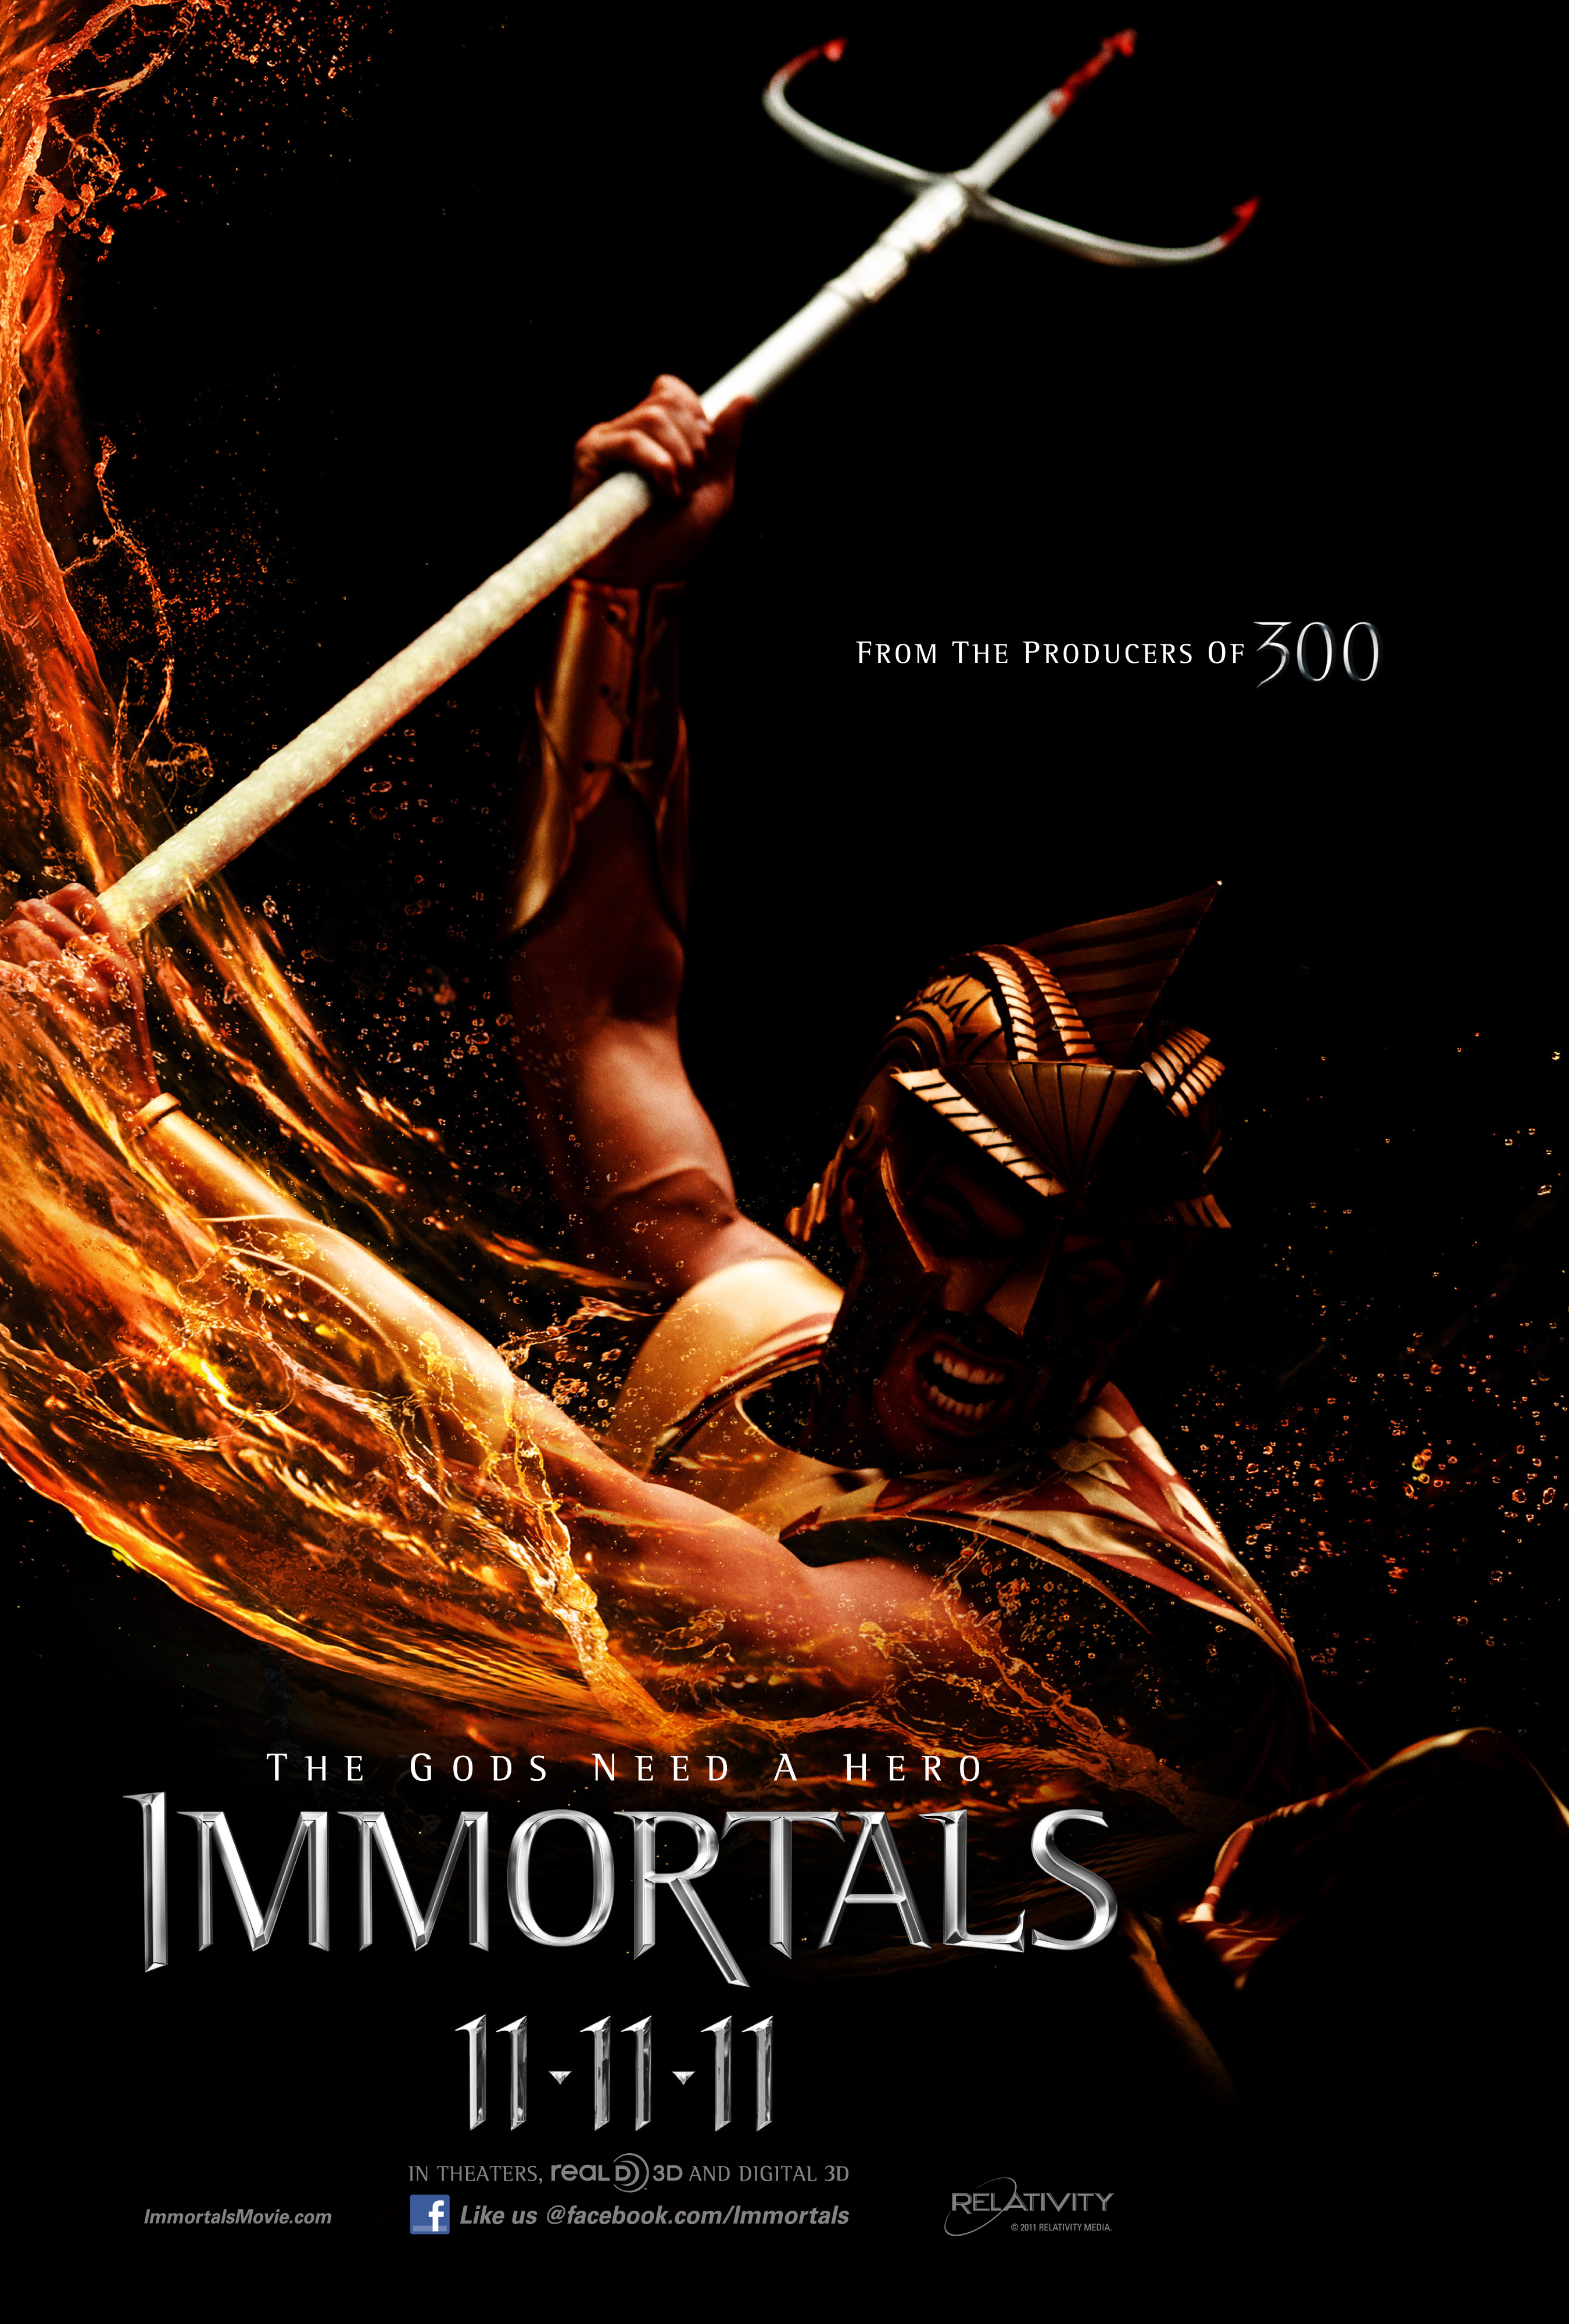 http://collider.com/wp-content/uploads/immortals-movie-poster-poseidon1.jpg